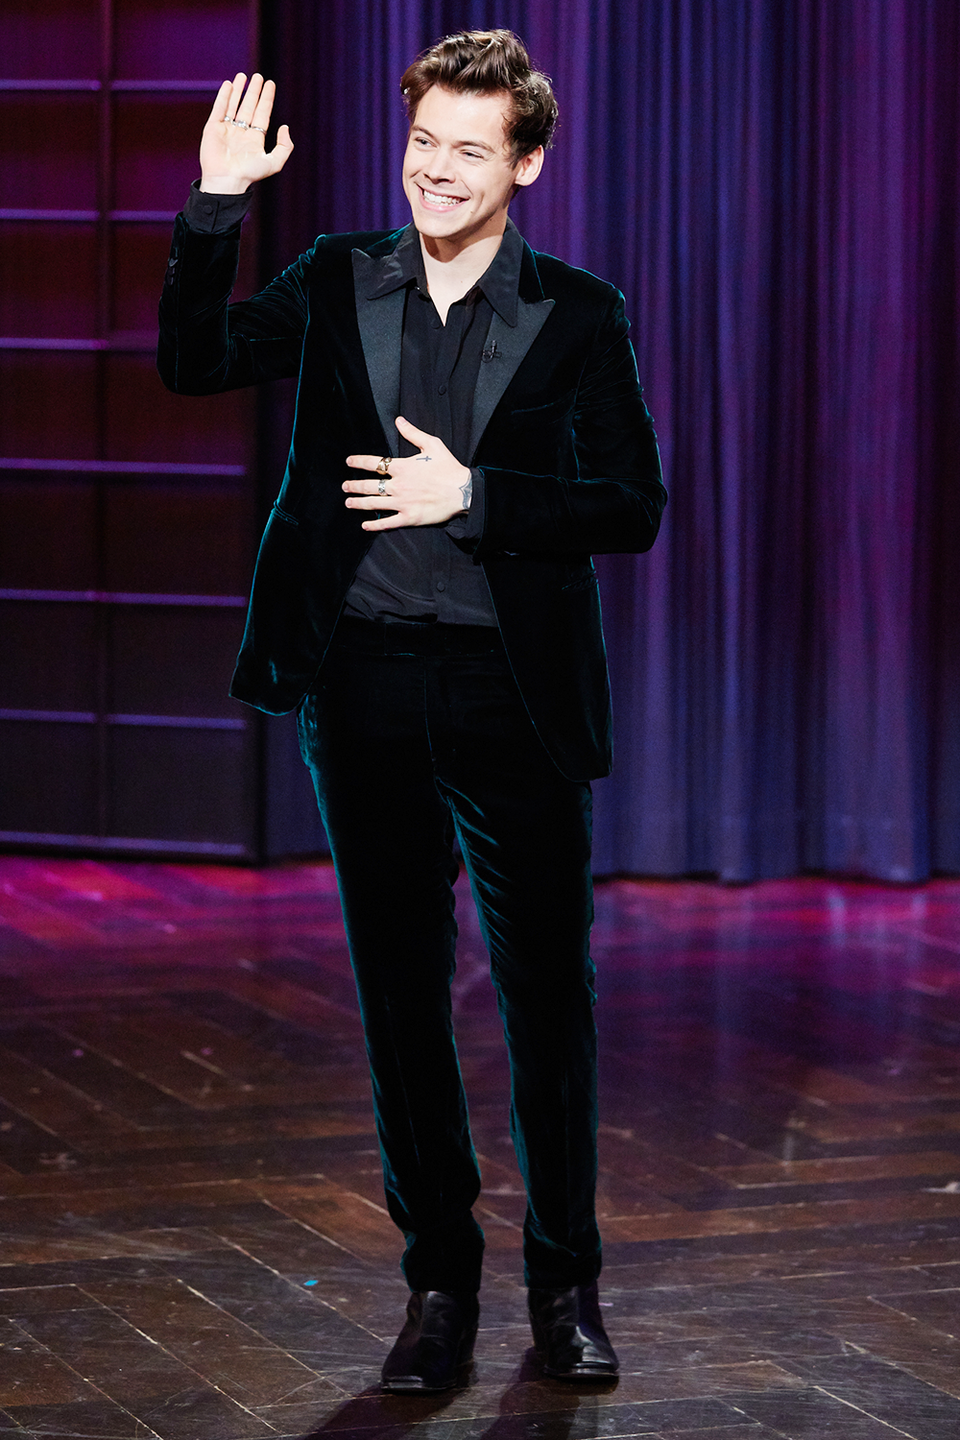 <p>Once again, just when you think he's toning it down, you realize he's wearing head-to-toe deep green velvet. This man is a treasure.</p>